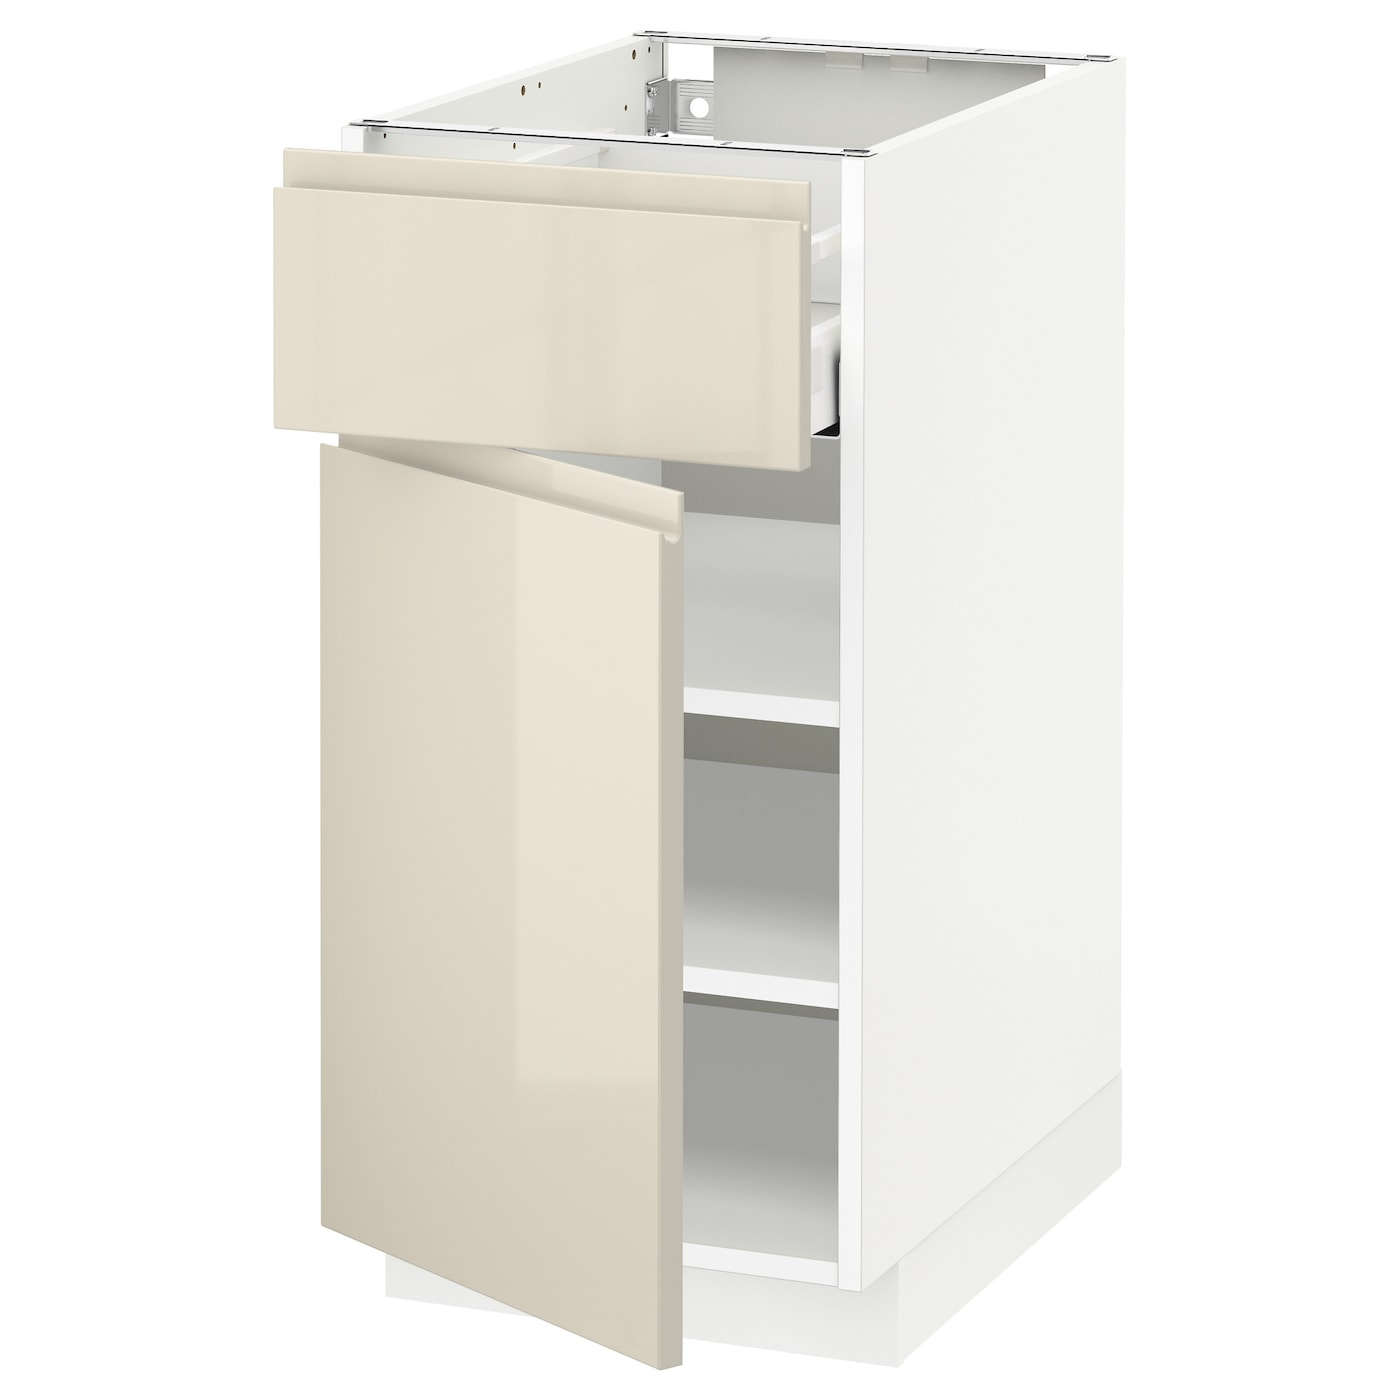 Metod Maximera Base Cabinet With Drawer Door White Voxtorp High Gloss Light Beige 40x60 Cm Ikea